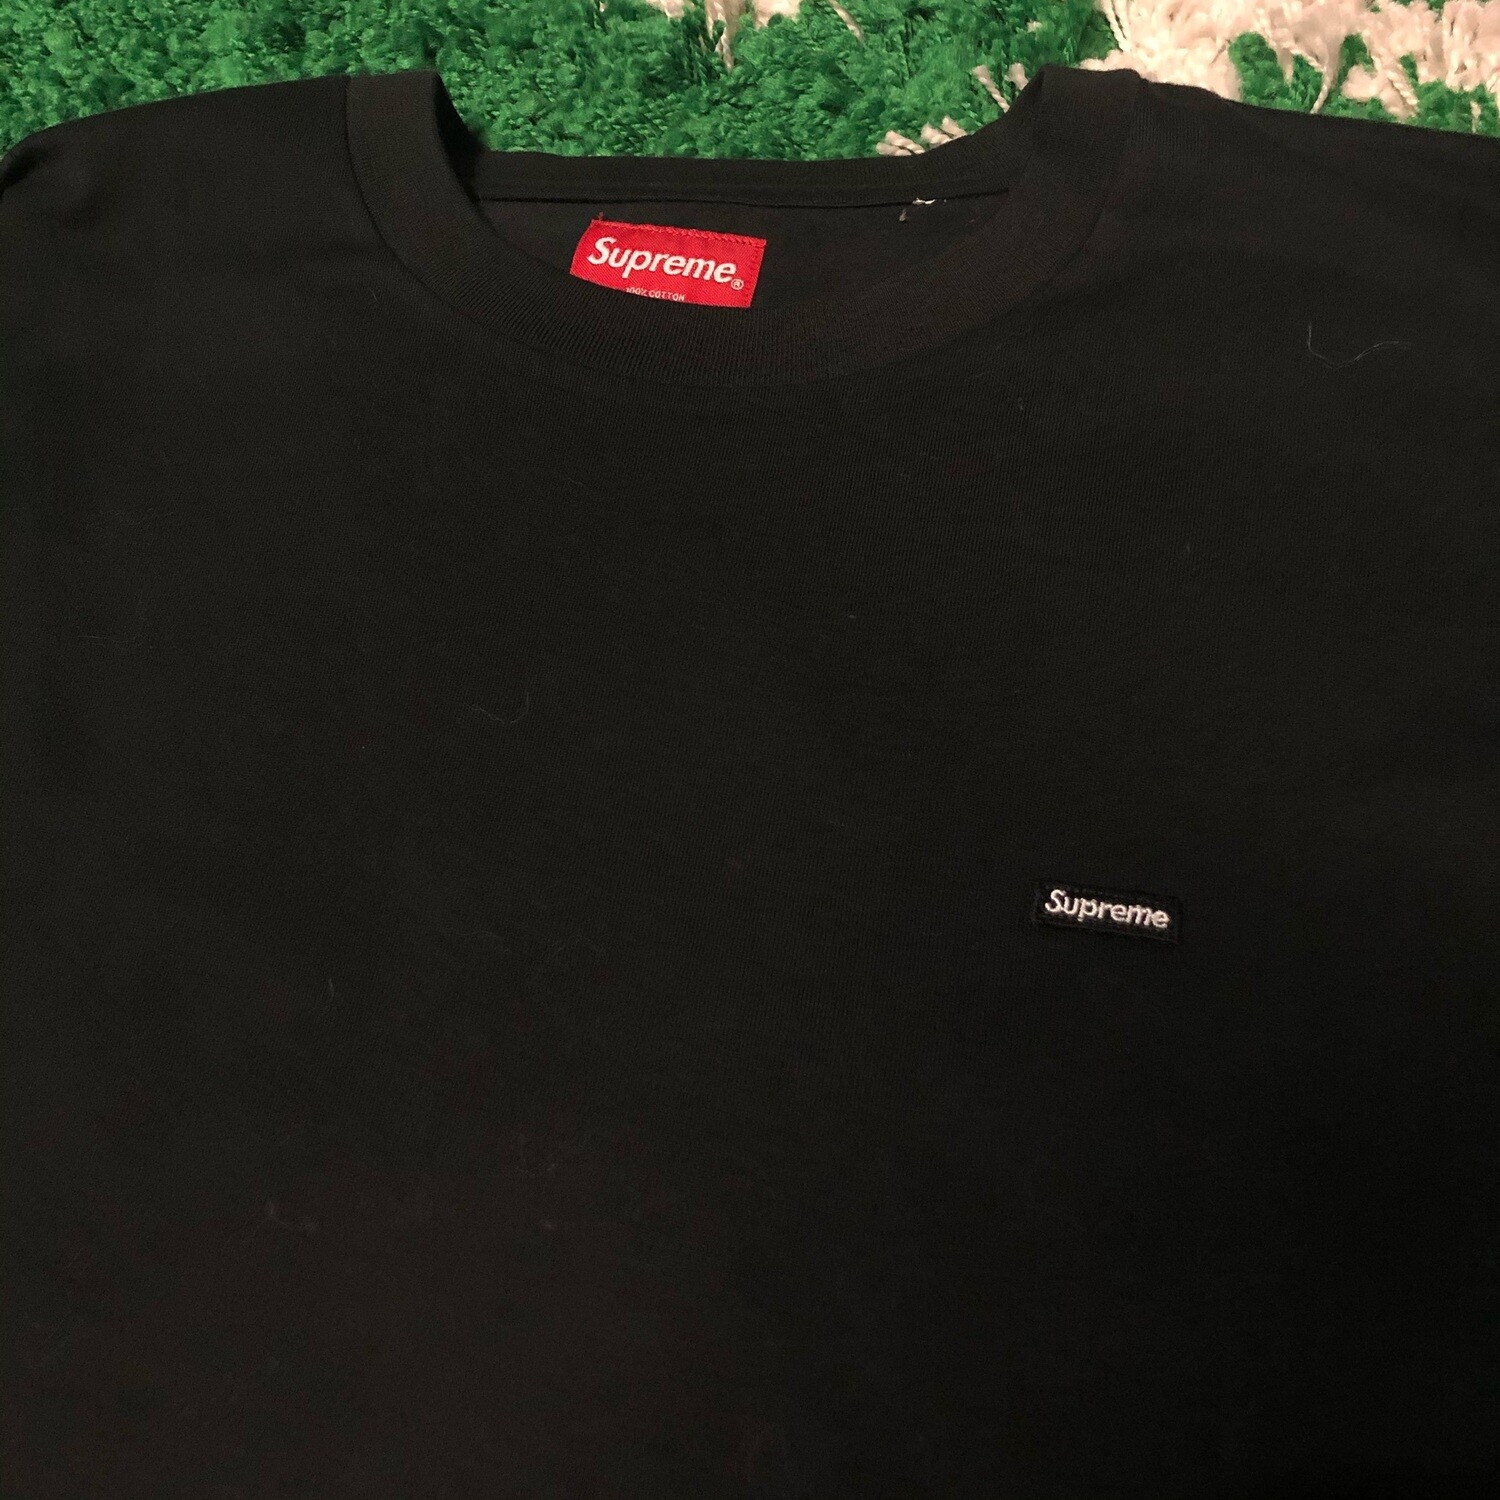 Supreme Small Box Logo Tee Black Size XL